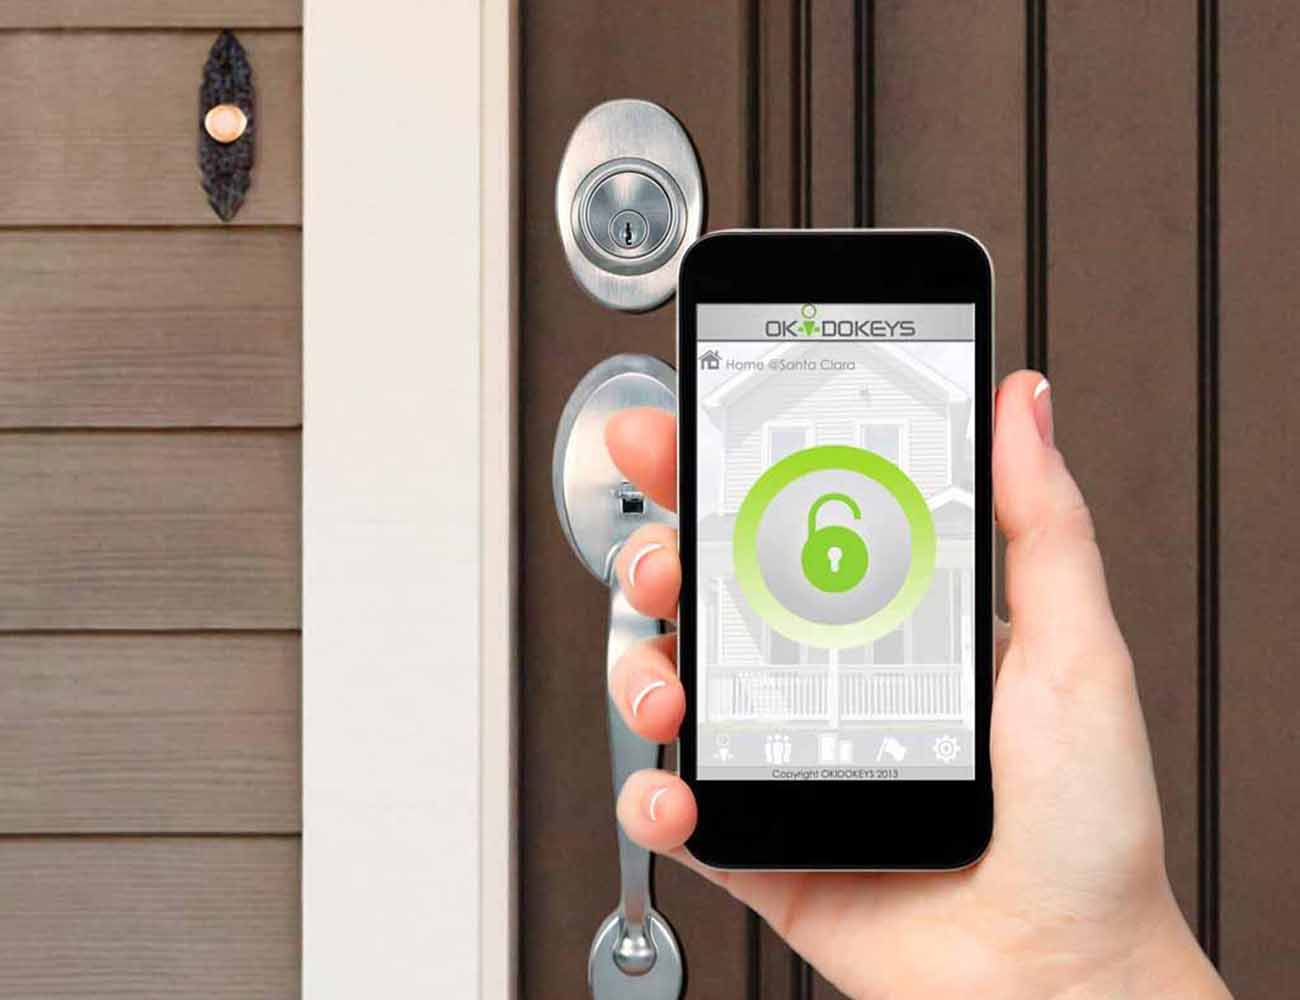 "<em class=""algolia-search-highlight"">Bluetooth</em> Enabled Smart Lock by Okidokeys"